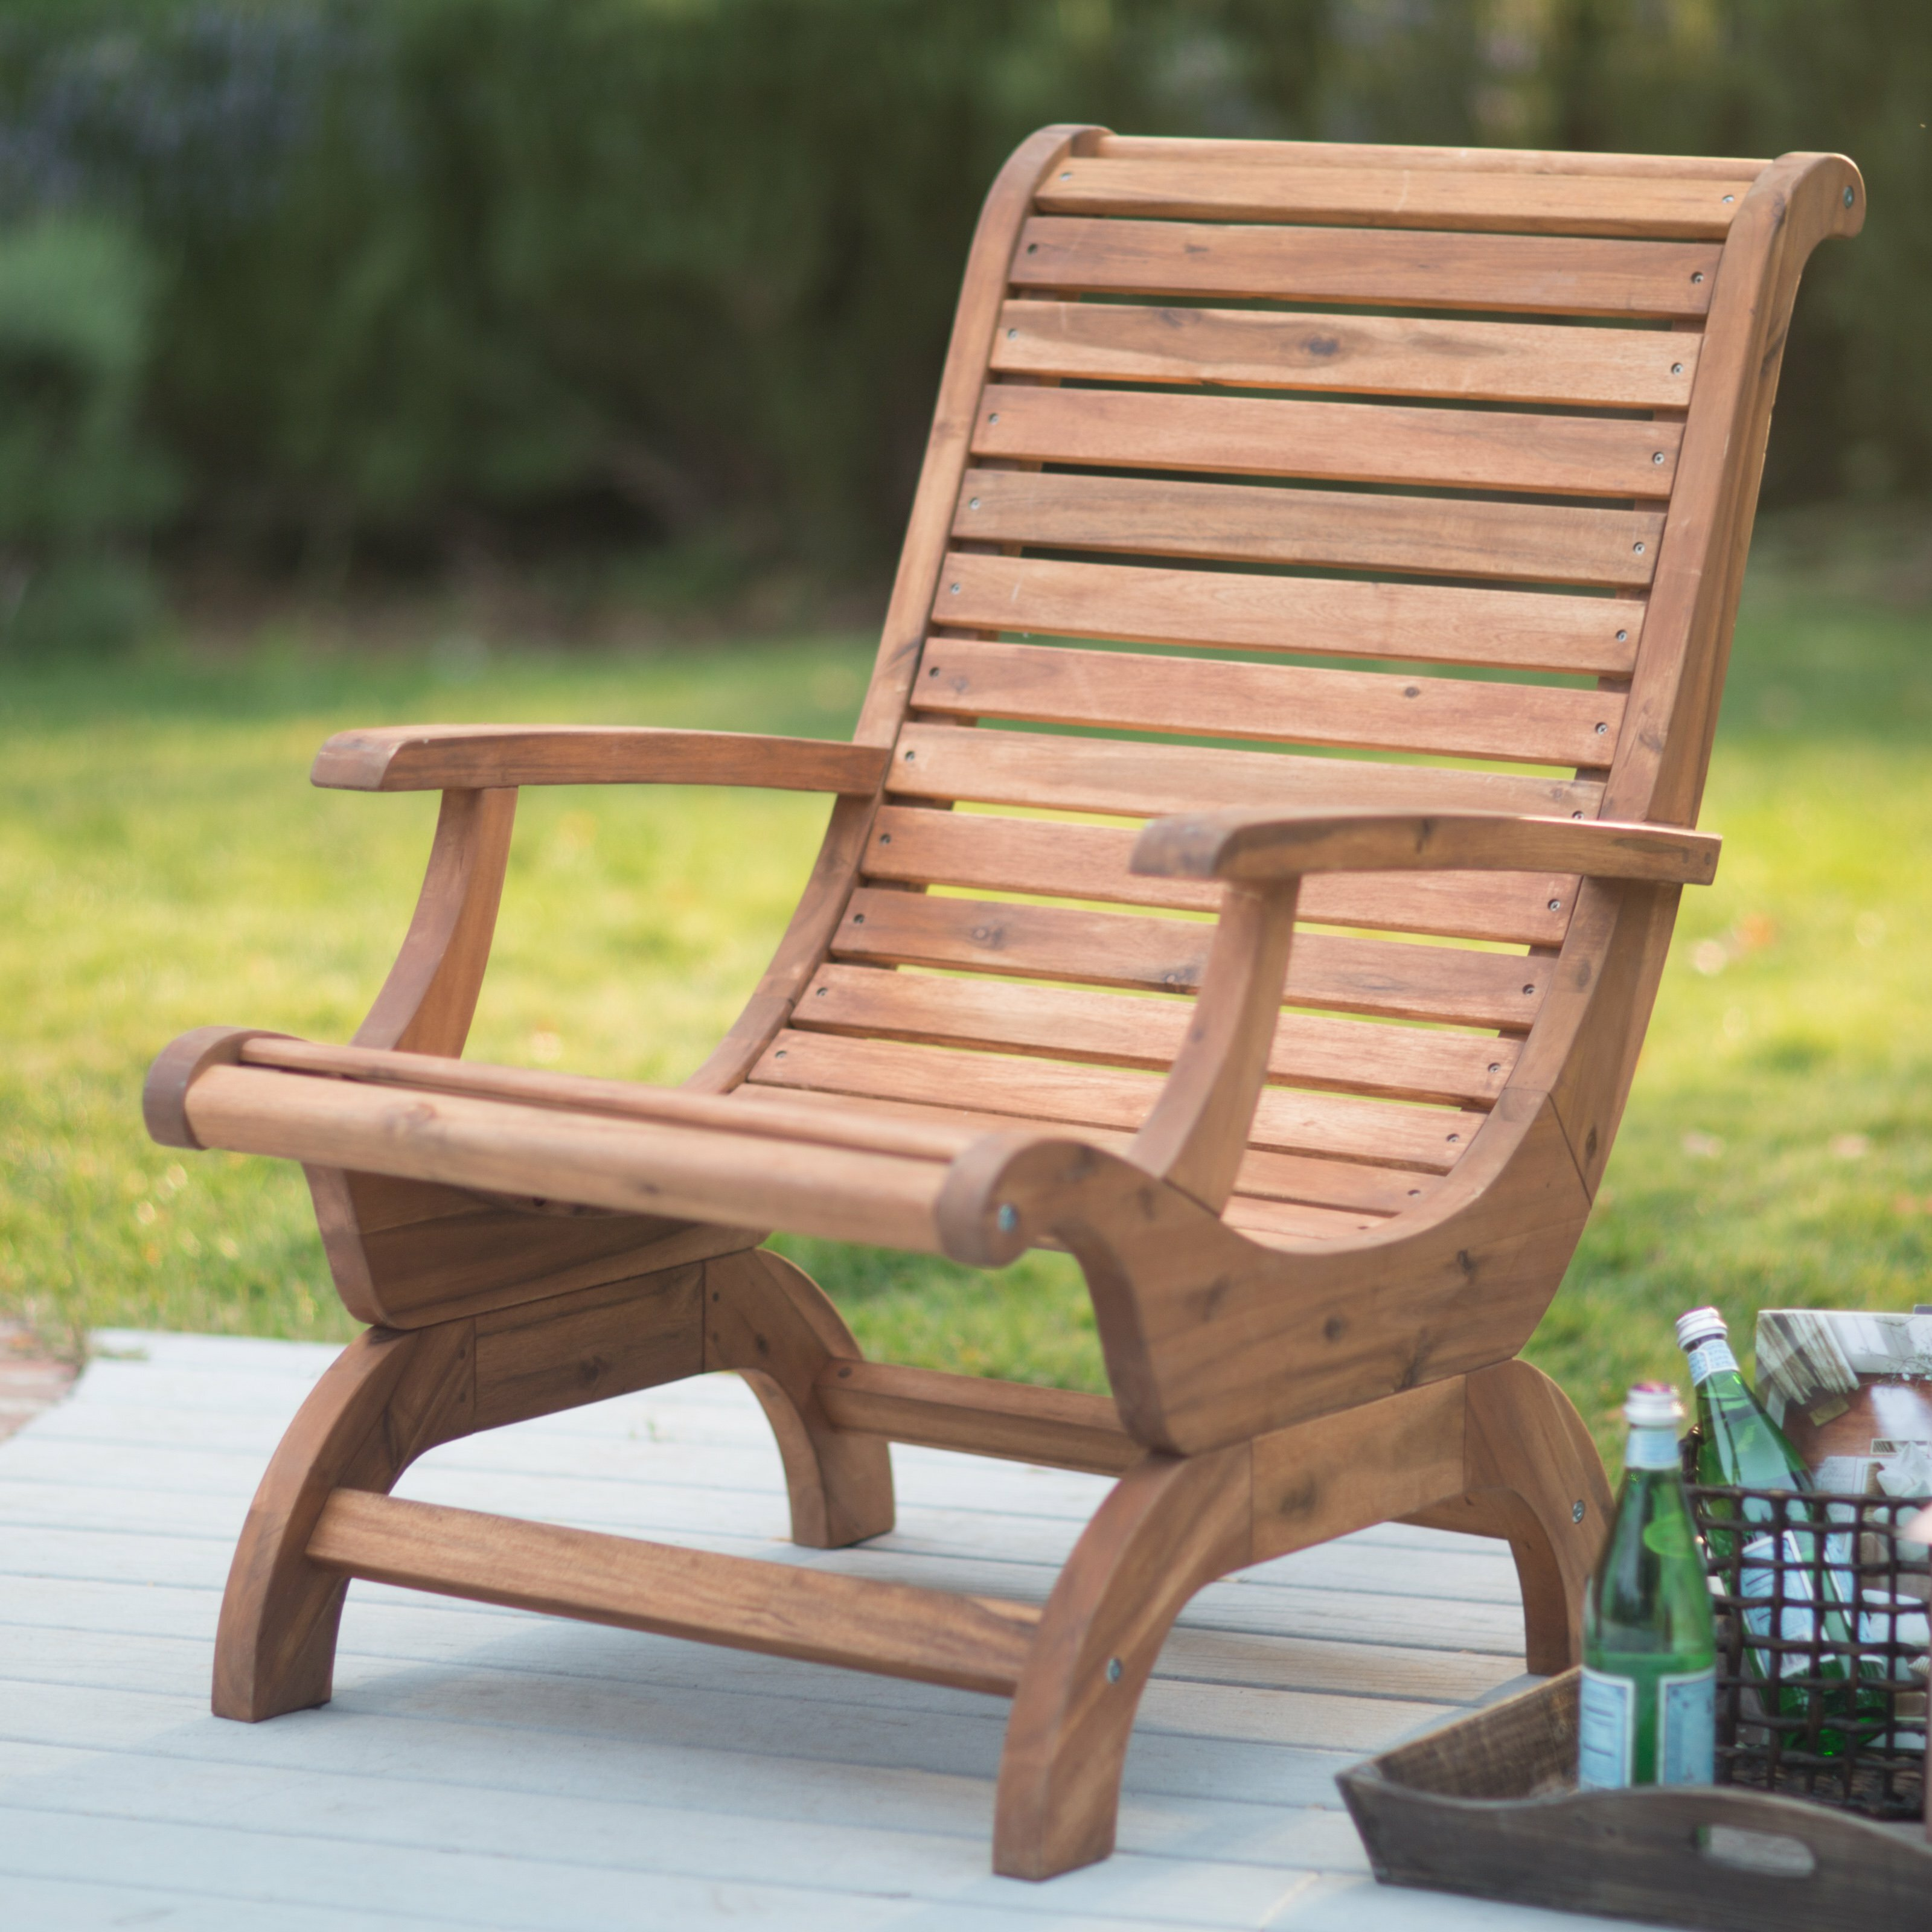 Lowes Lounge Chairs | Lowes Rockers | Patio Chairs Lowes